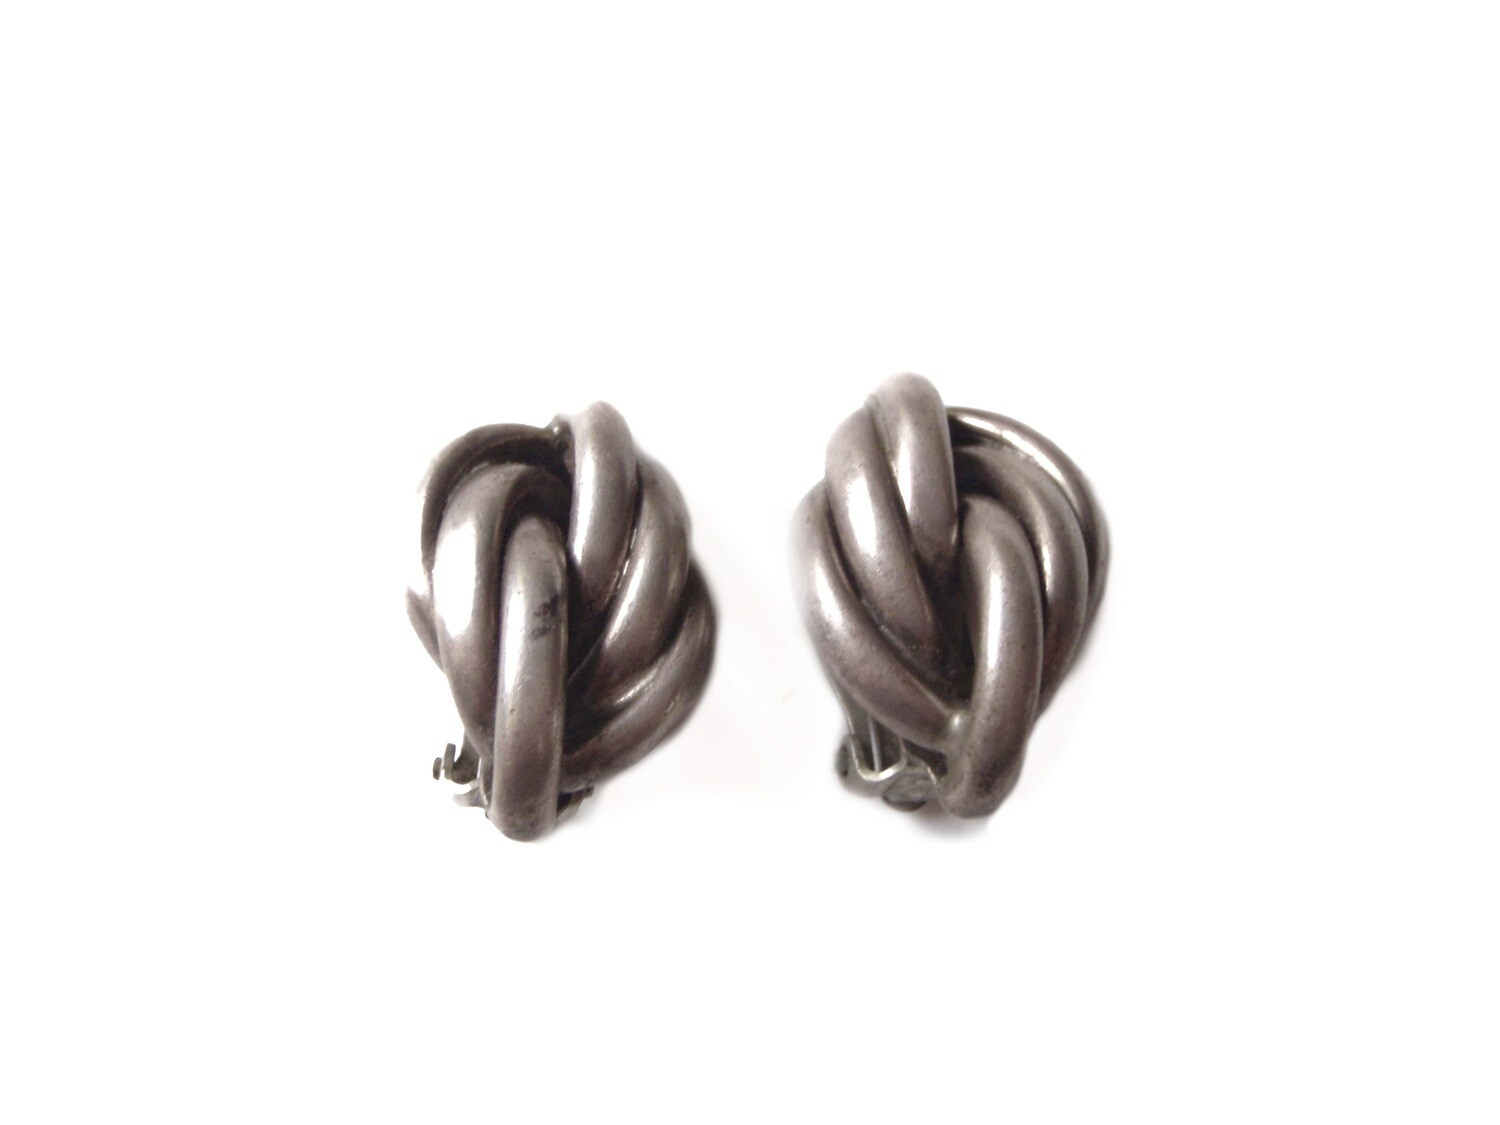 Jondell Taxco Mexico Silver Twisted Knots Clip On Earrings